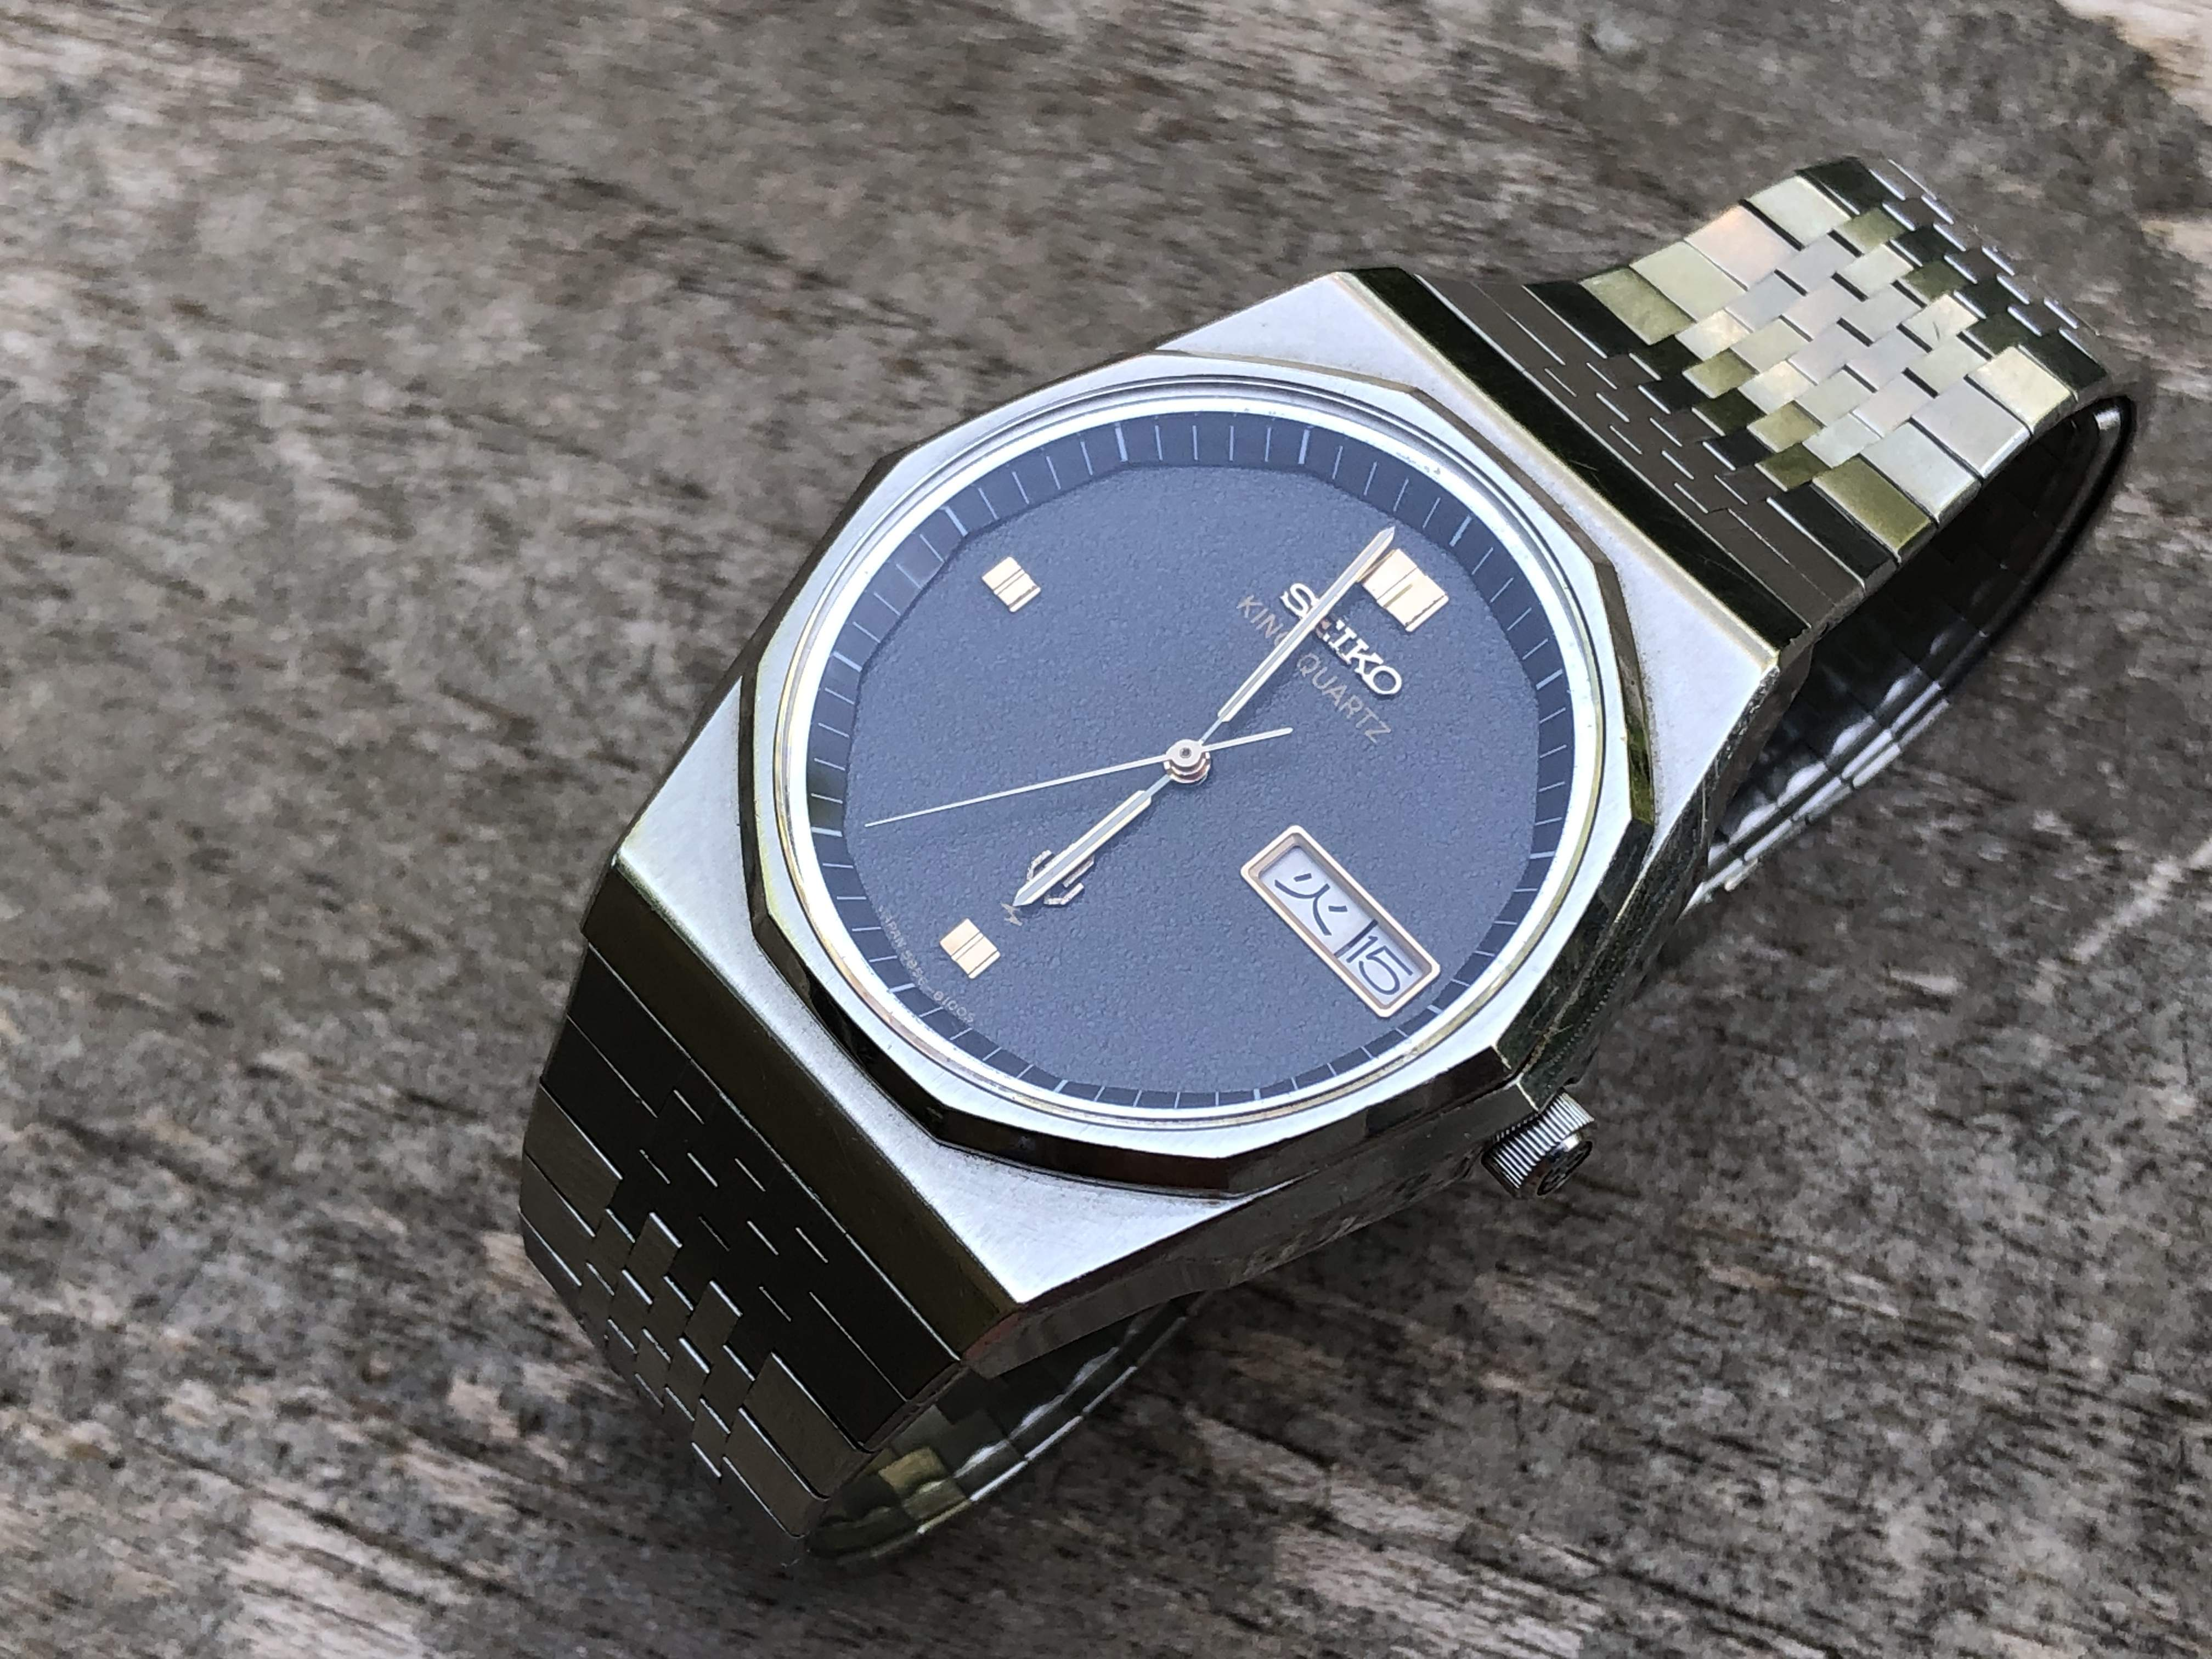 Seiko King Quartz 5856-8080 (Sold)